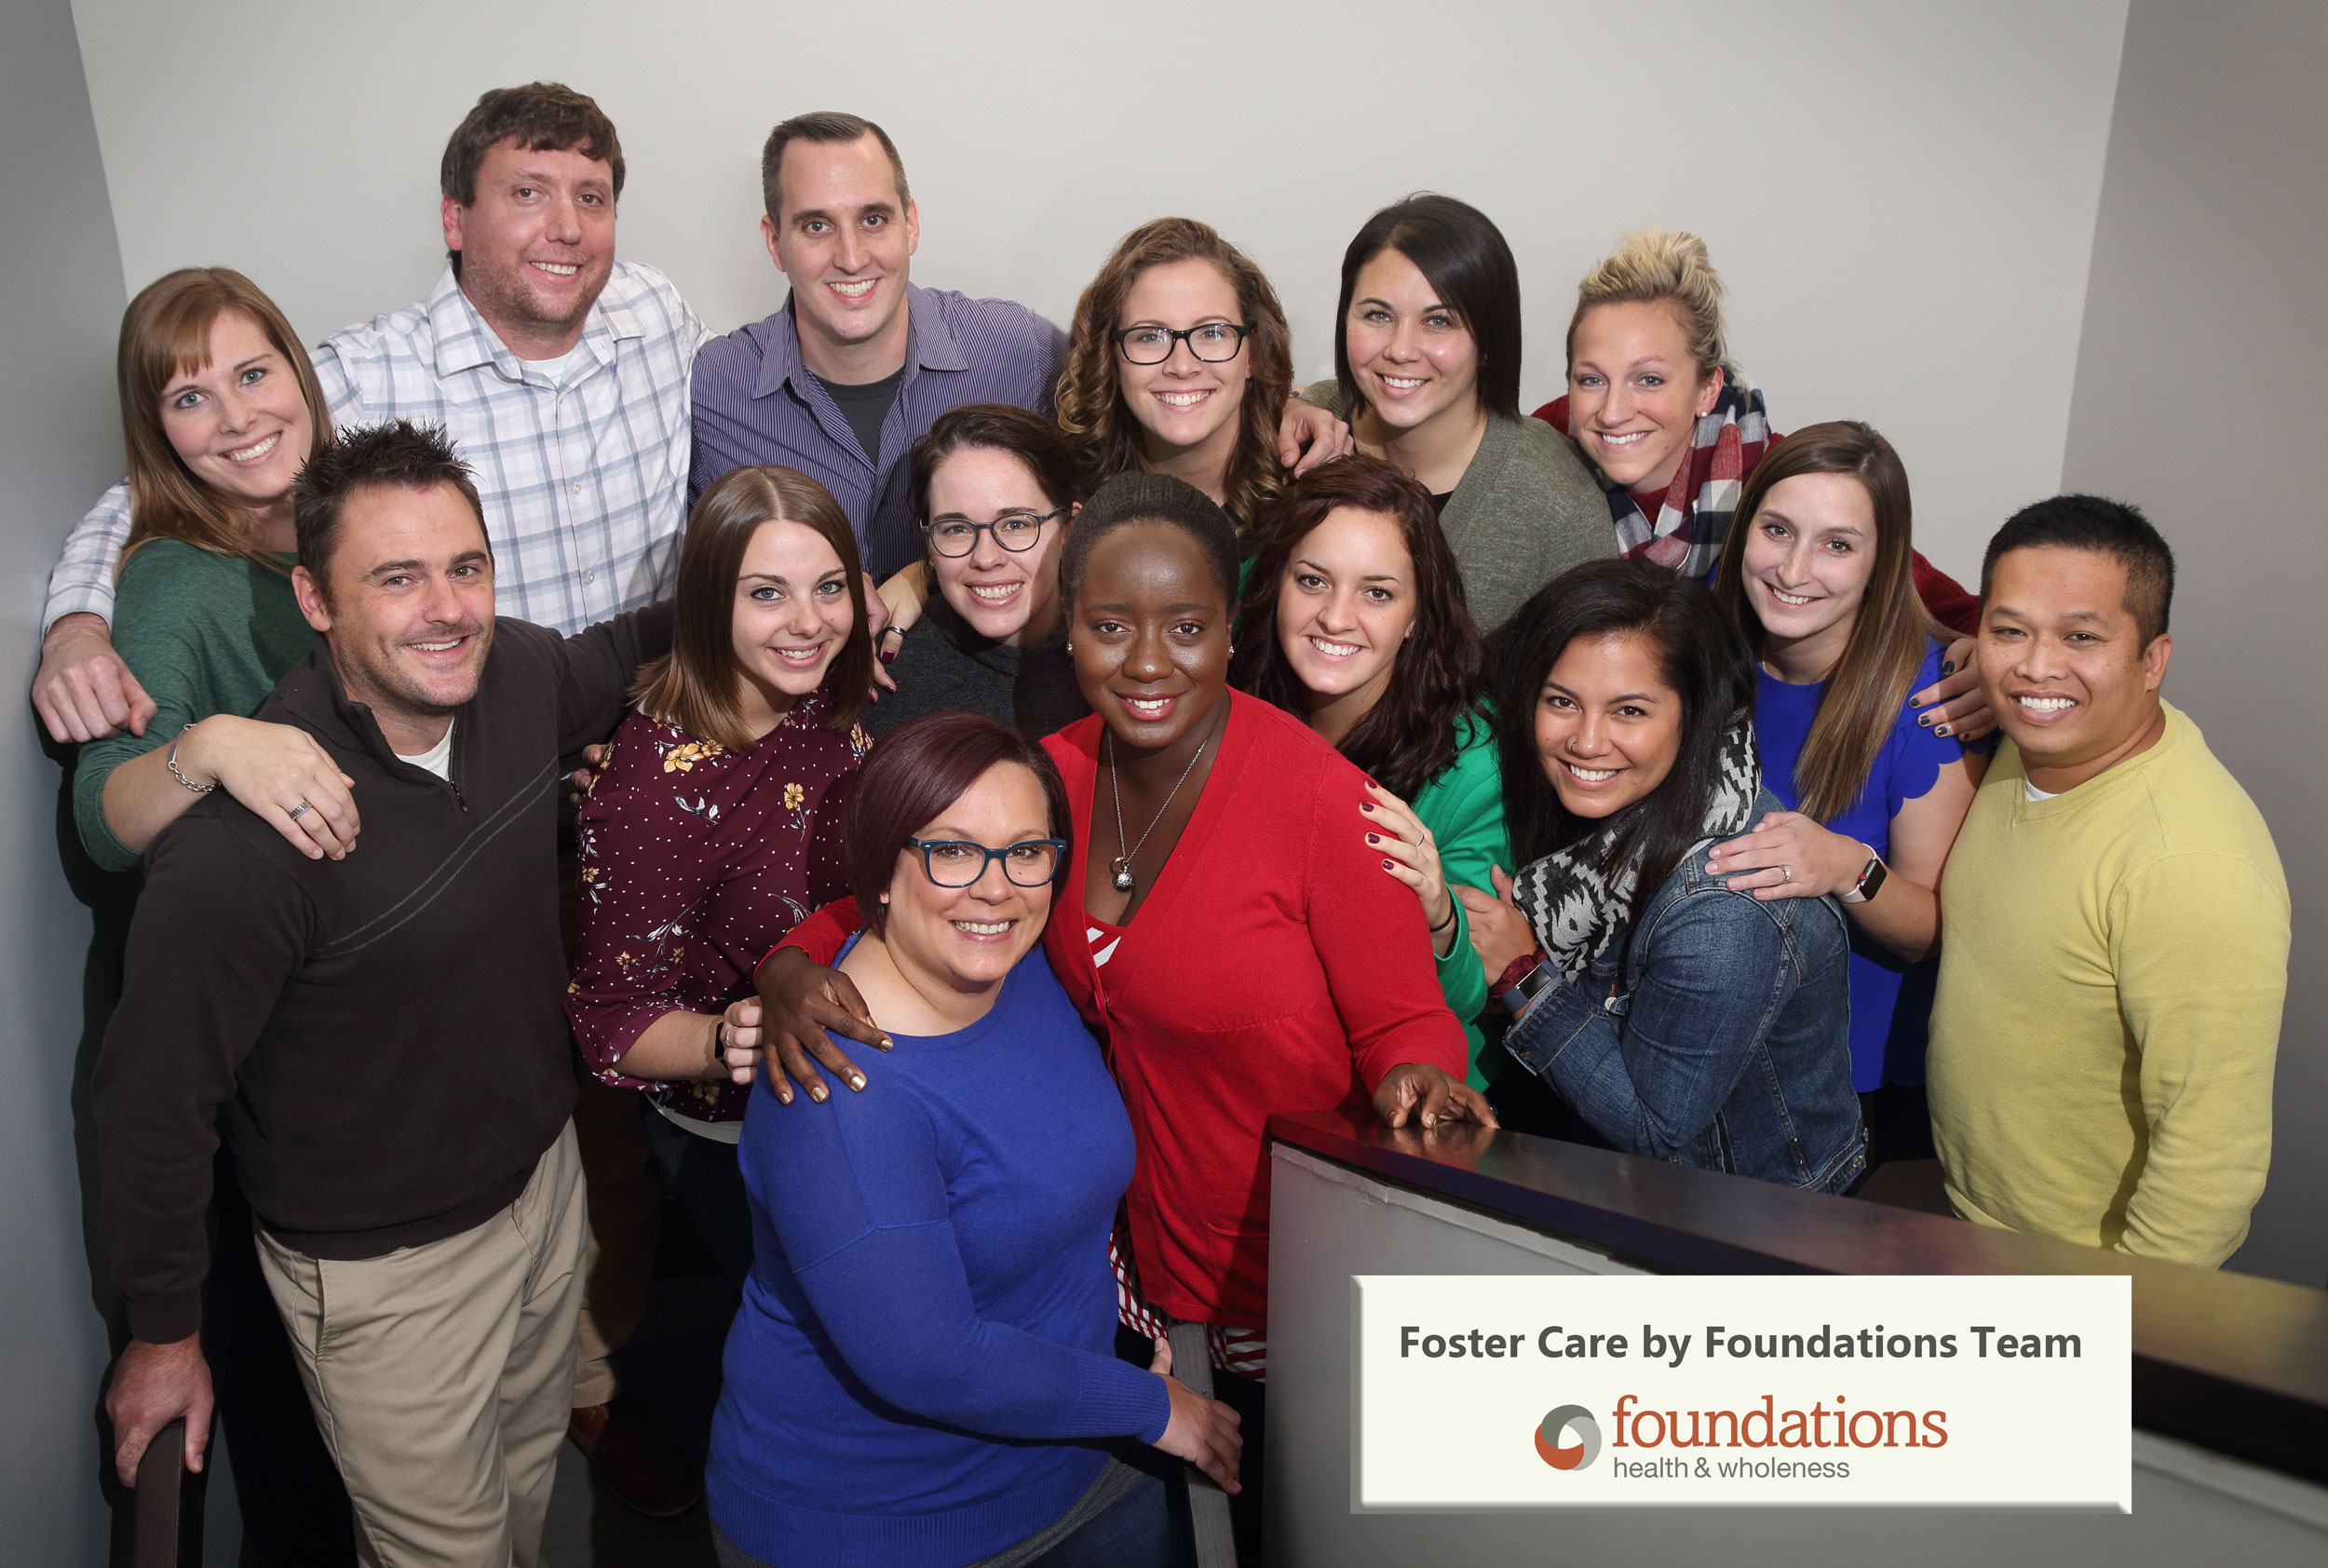 Foundations Foster Care Team